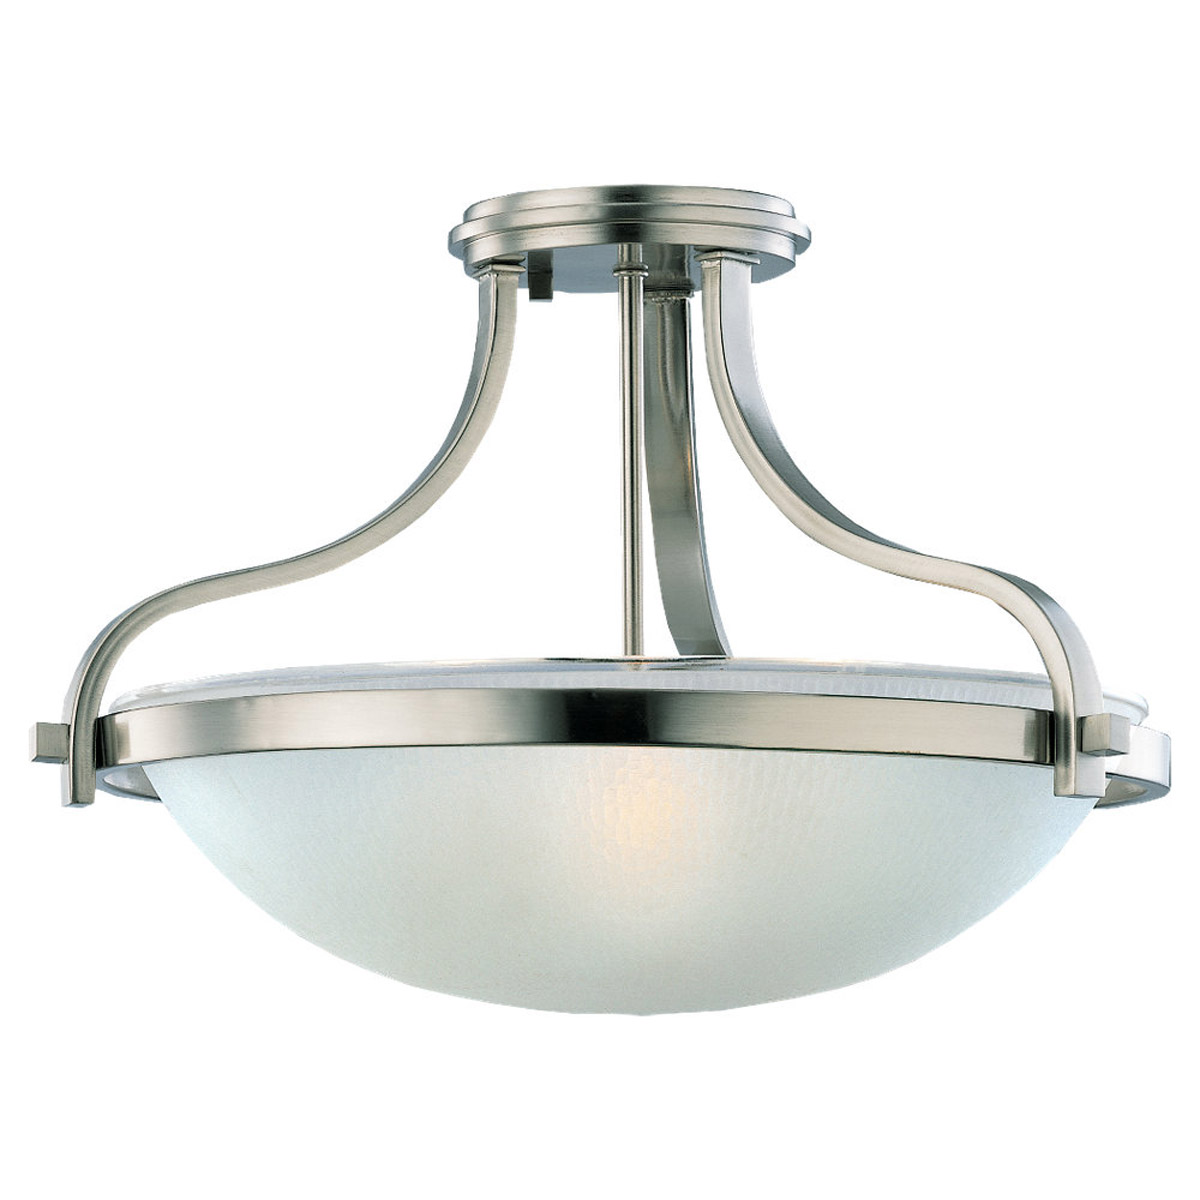 Sea Gull Lighting Eternity 3 Light Flush Mount in Brushed Nickel 77115-962